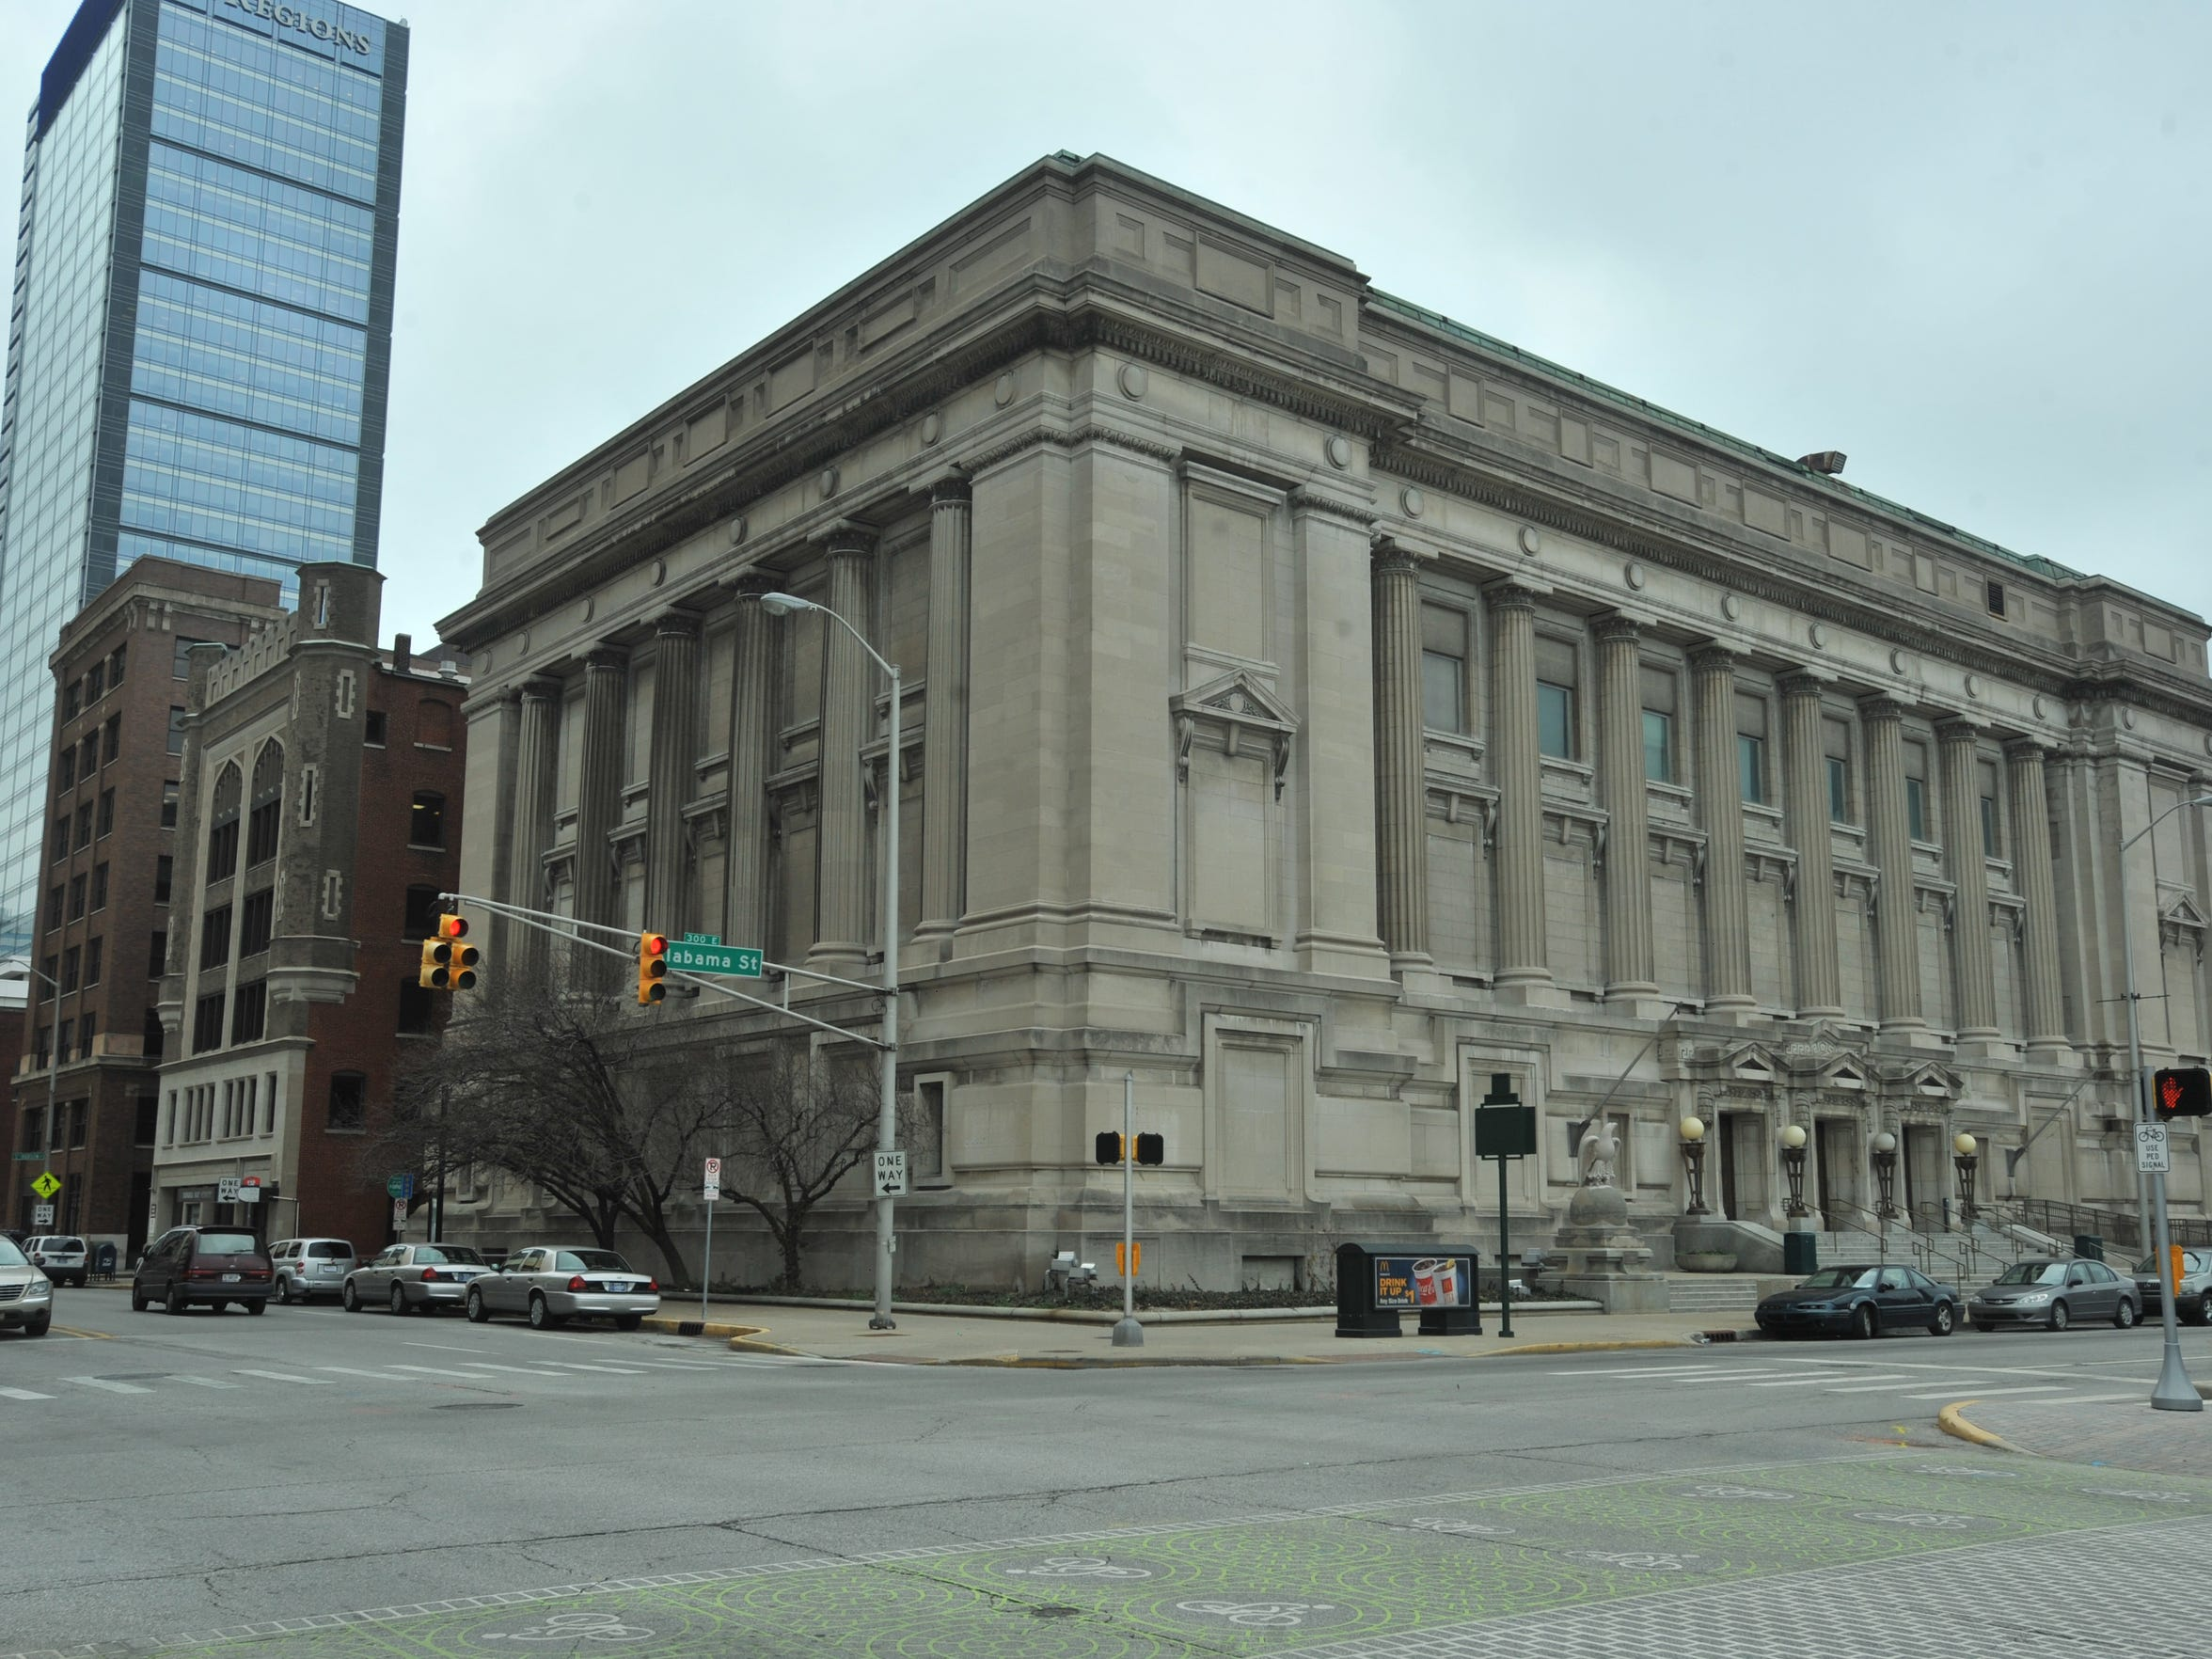 Exterior of the former Indianapolis City Hall building